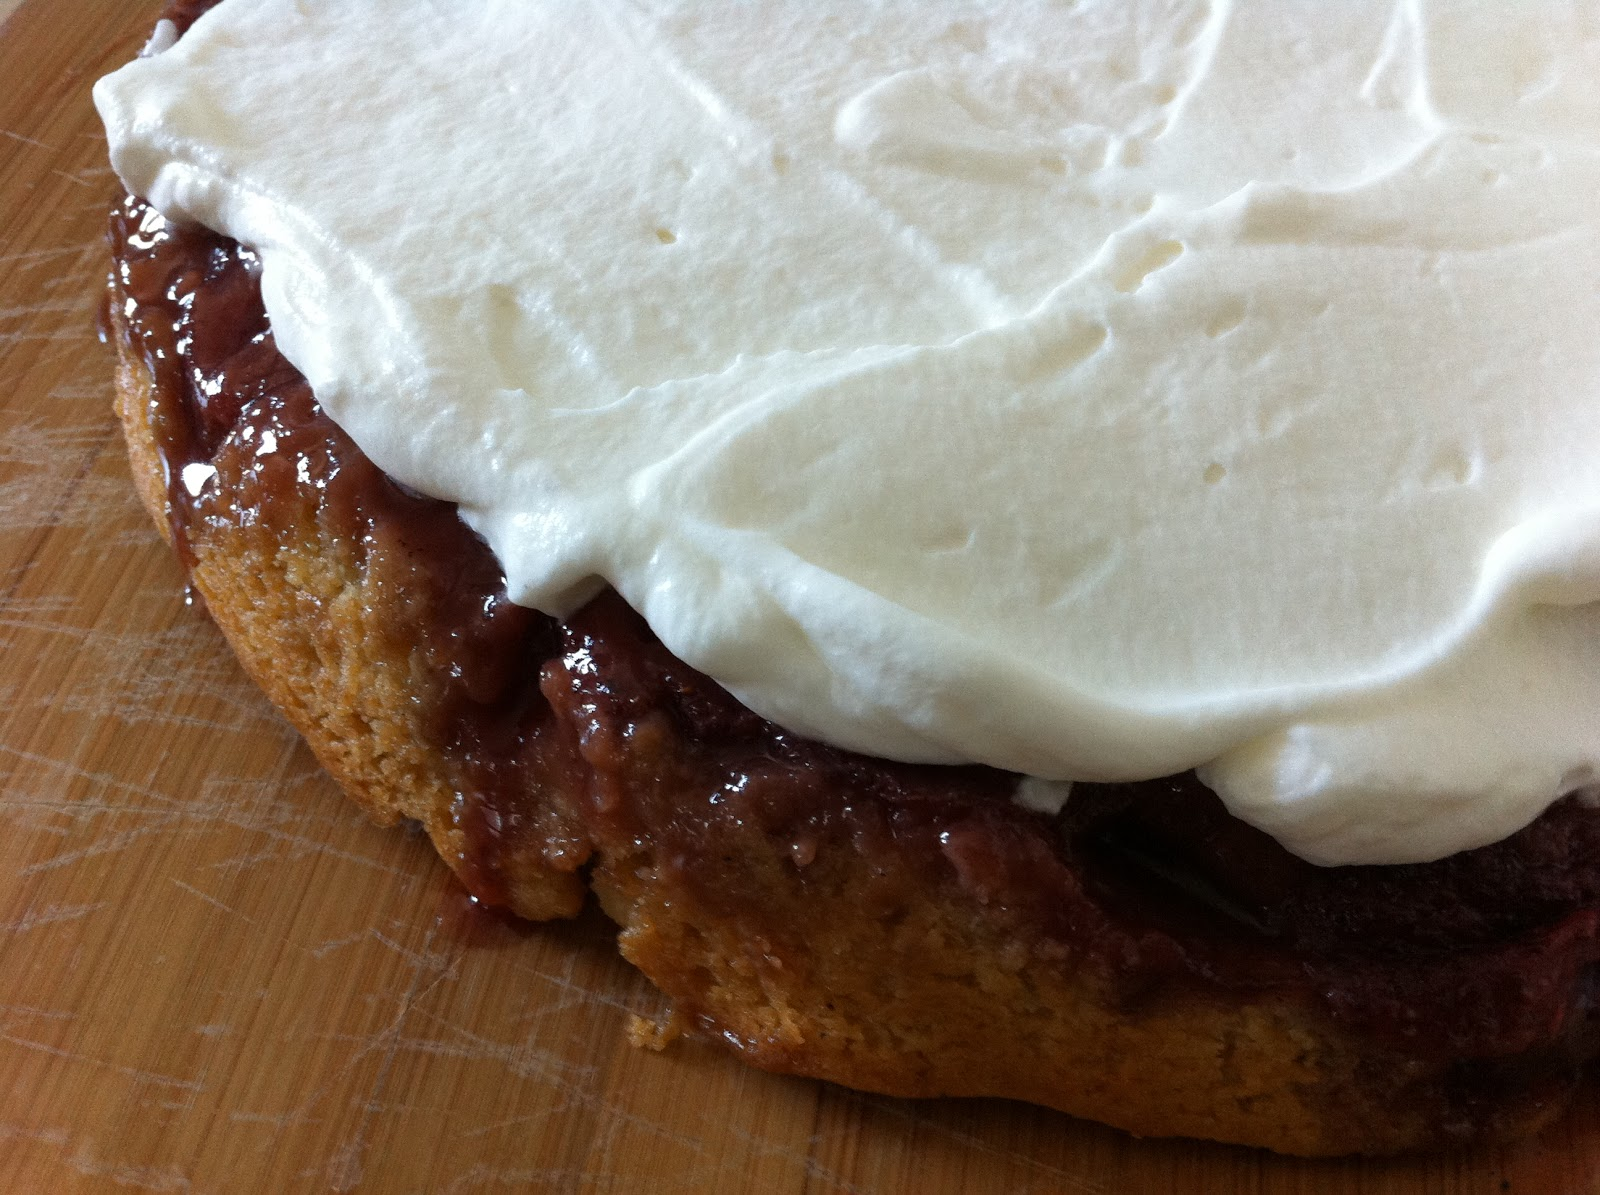 Sharon The Kitchen: Strawberry Upside-Down Cake with Cardamom